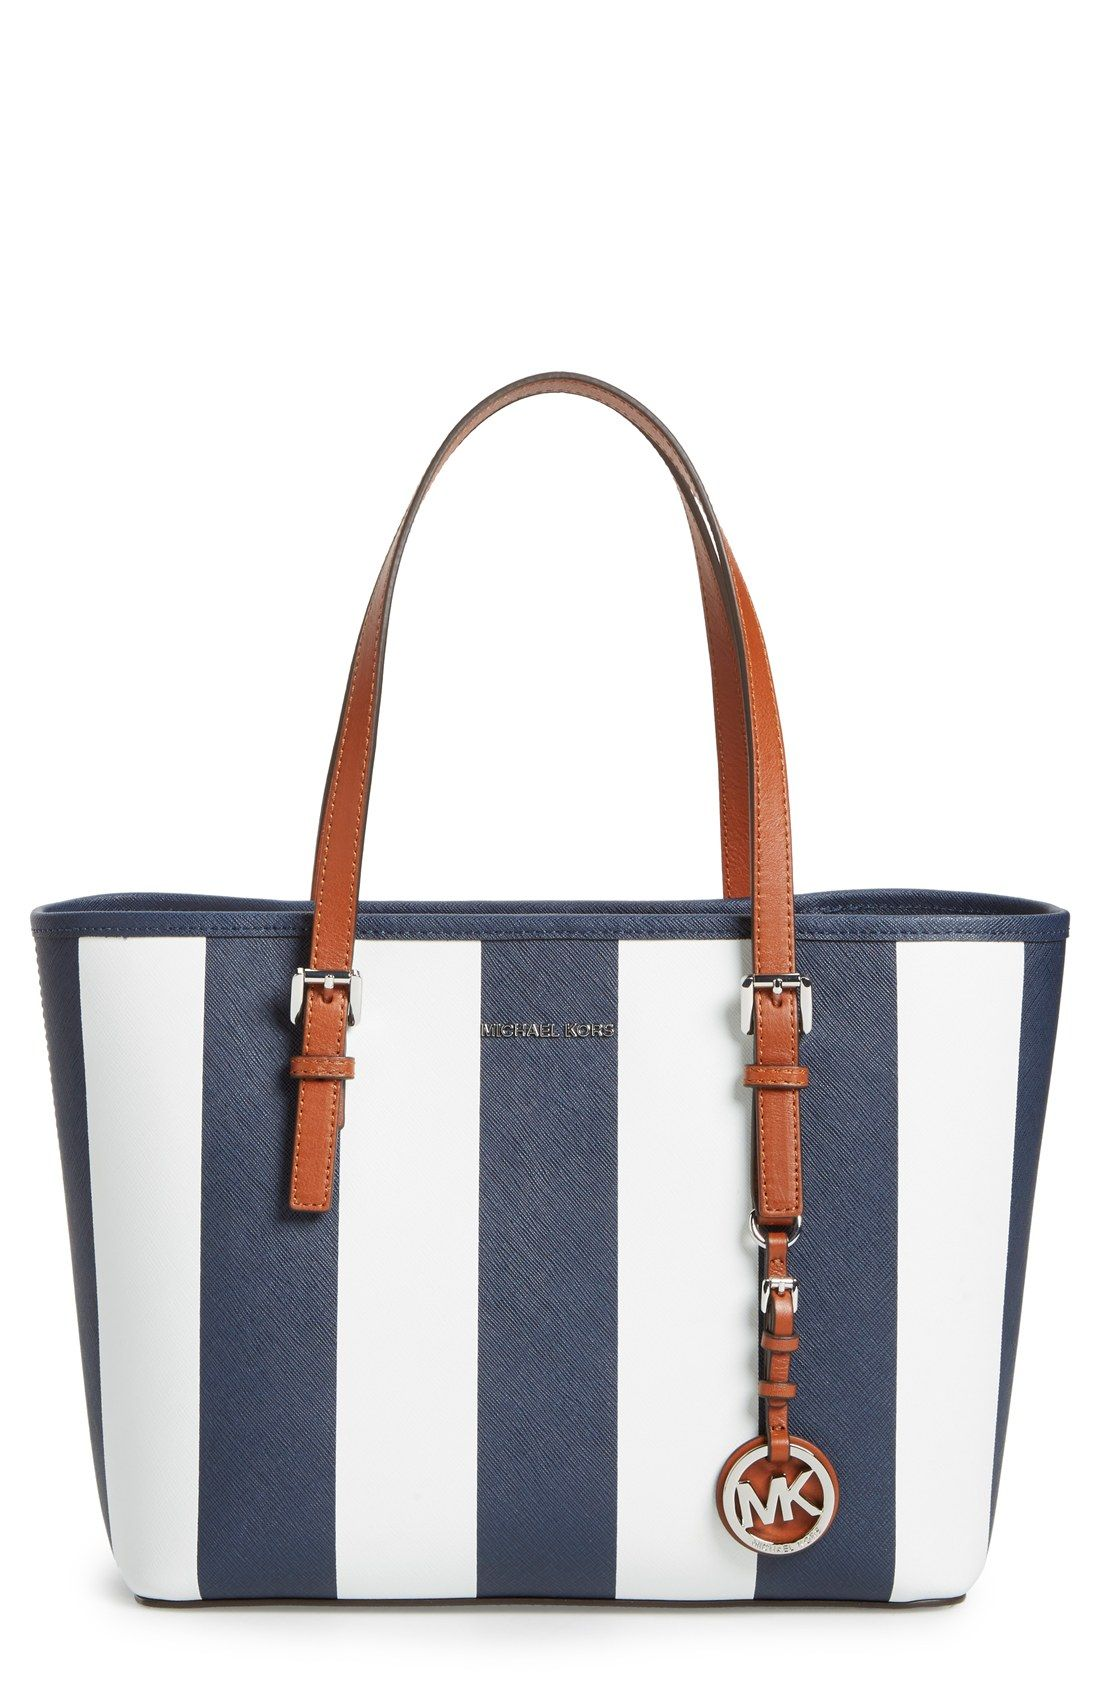 d0d91e76dbc0 Nordstrom SALE Handbags Perfect for Spring 2016 - Shop Nordy. MICHAEL  Michael Kors 'Small Jet Set - Stripe' Leather Travel Tote